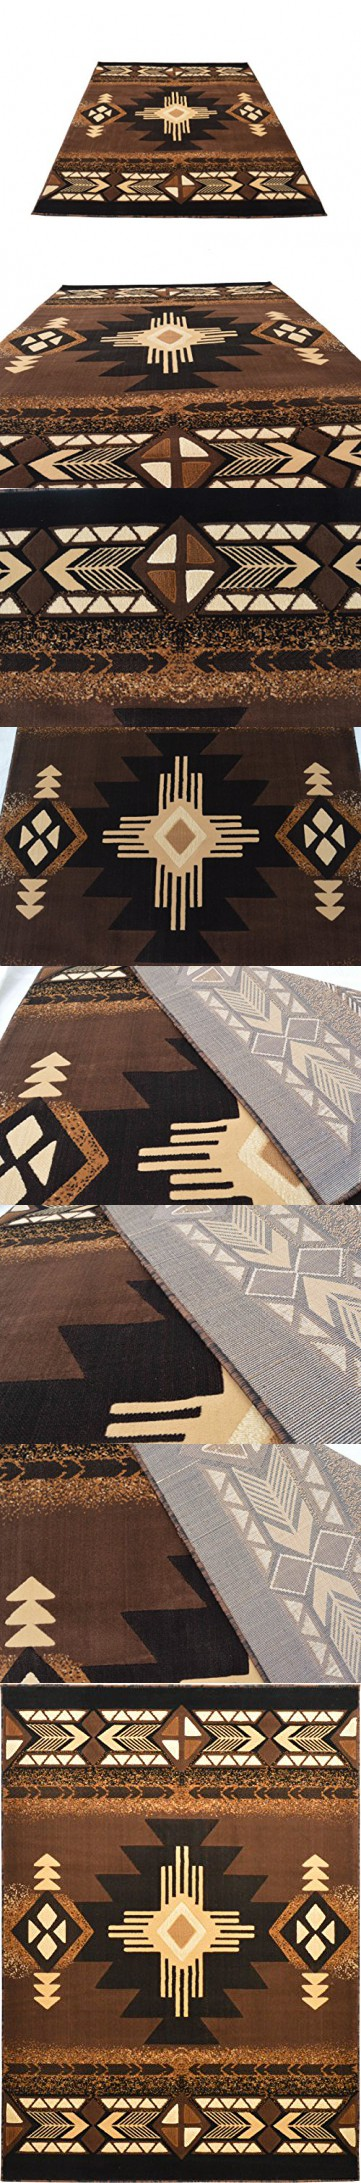 Rugs 4 Less Collection Southwest Native American Indian Area Rug Design R4L  318 Brown Chocolate (8u0027x10u0027)